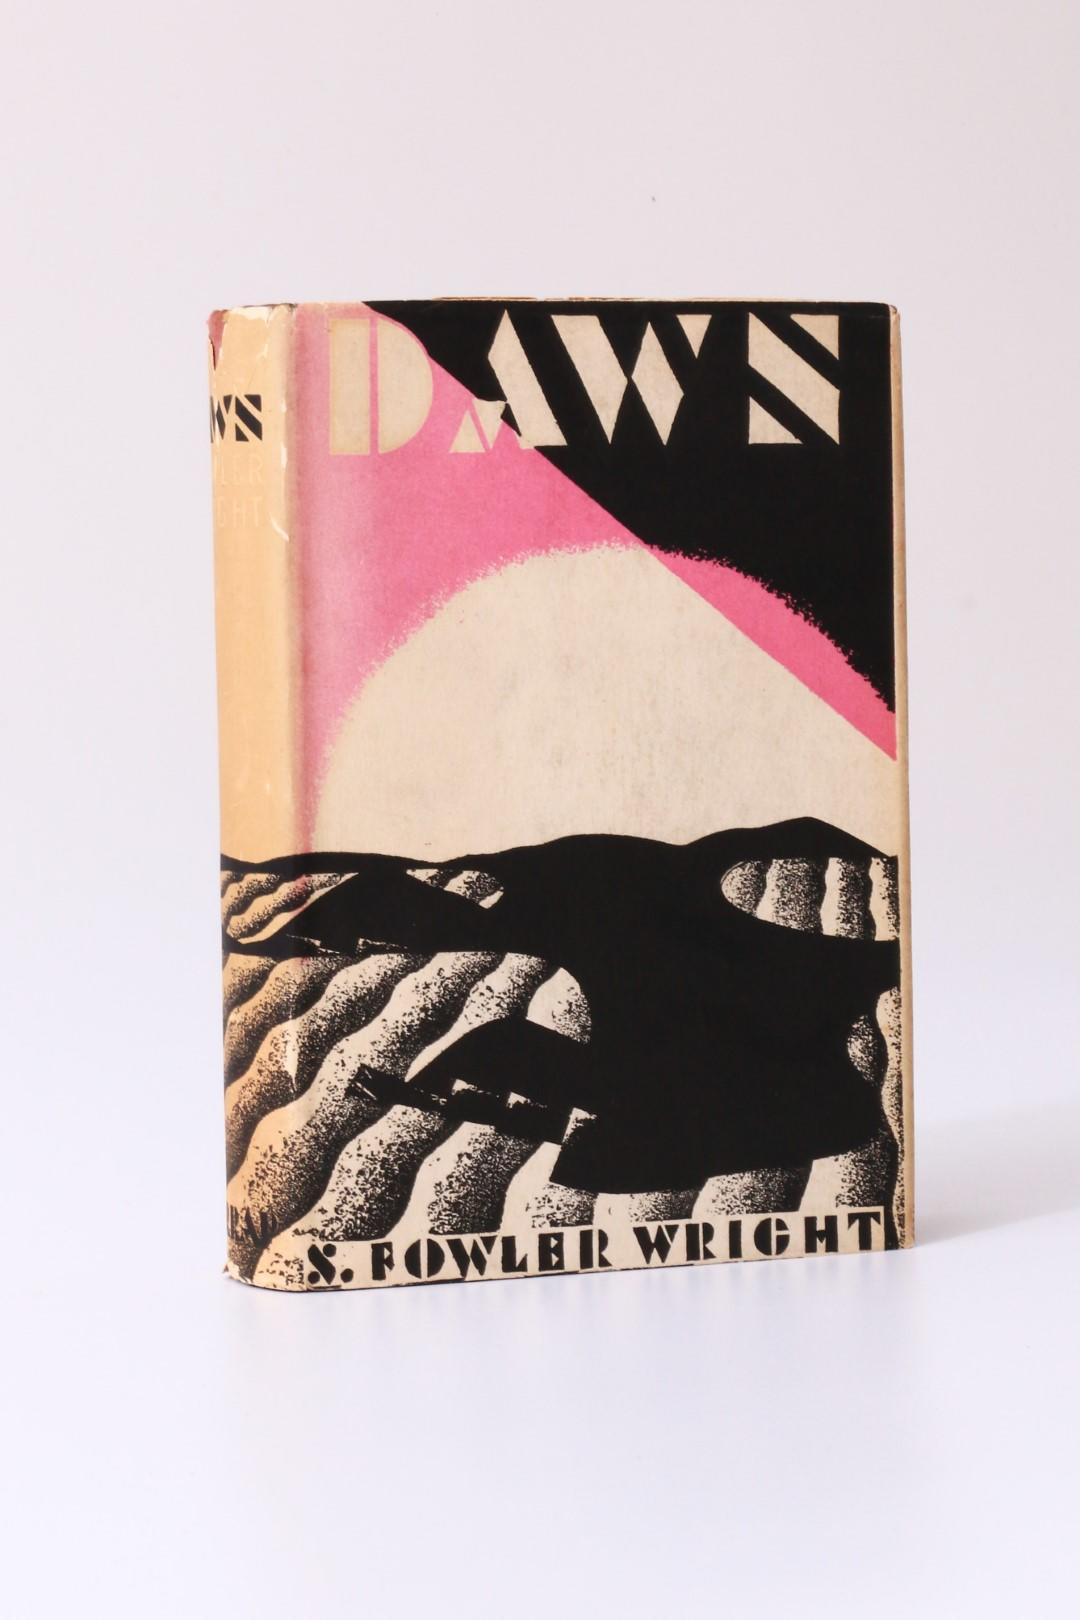 S. Fowler Wright - Dawn - Harrap, 1930, Signed First Edition.